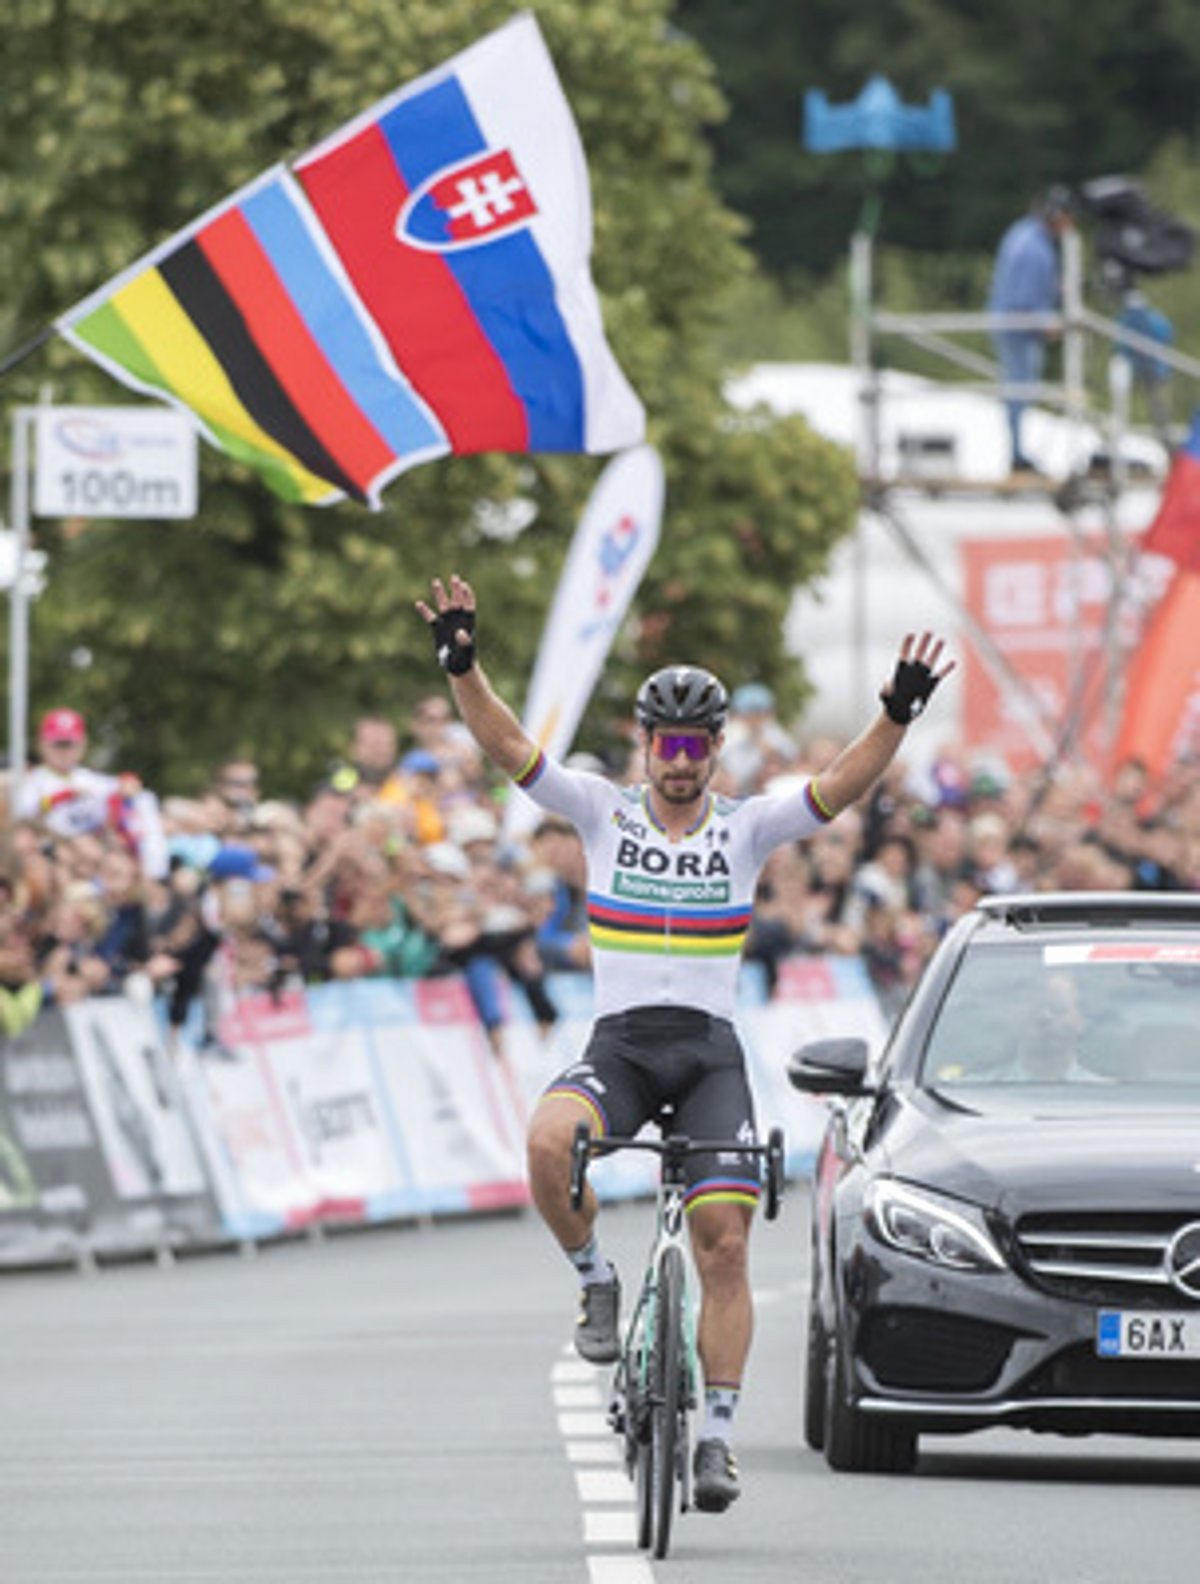 Gruskarten Per E Mail Genial Long Breakaway Gives Slovak Championship to Sagan Surprising